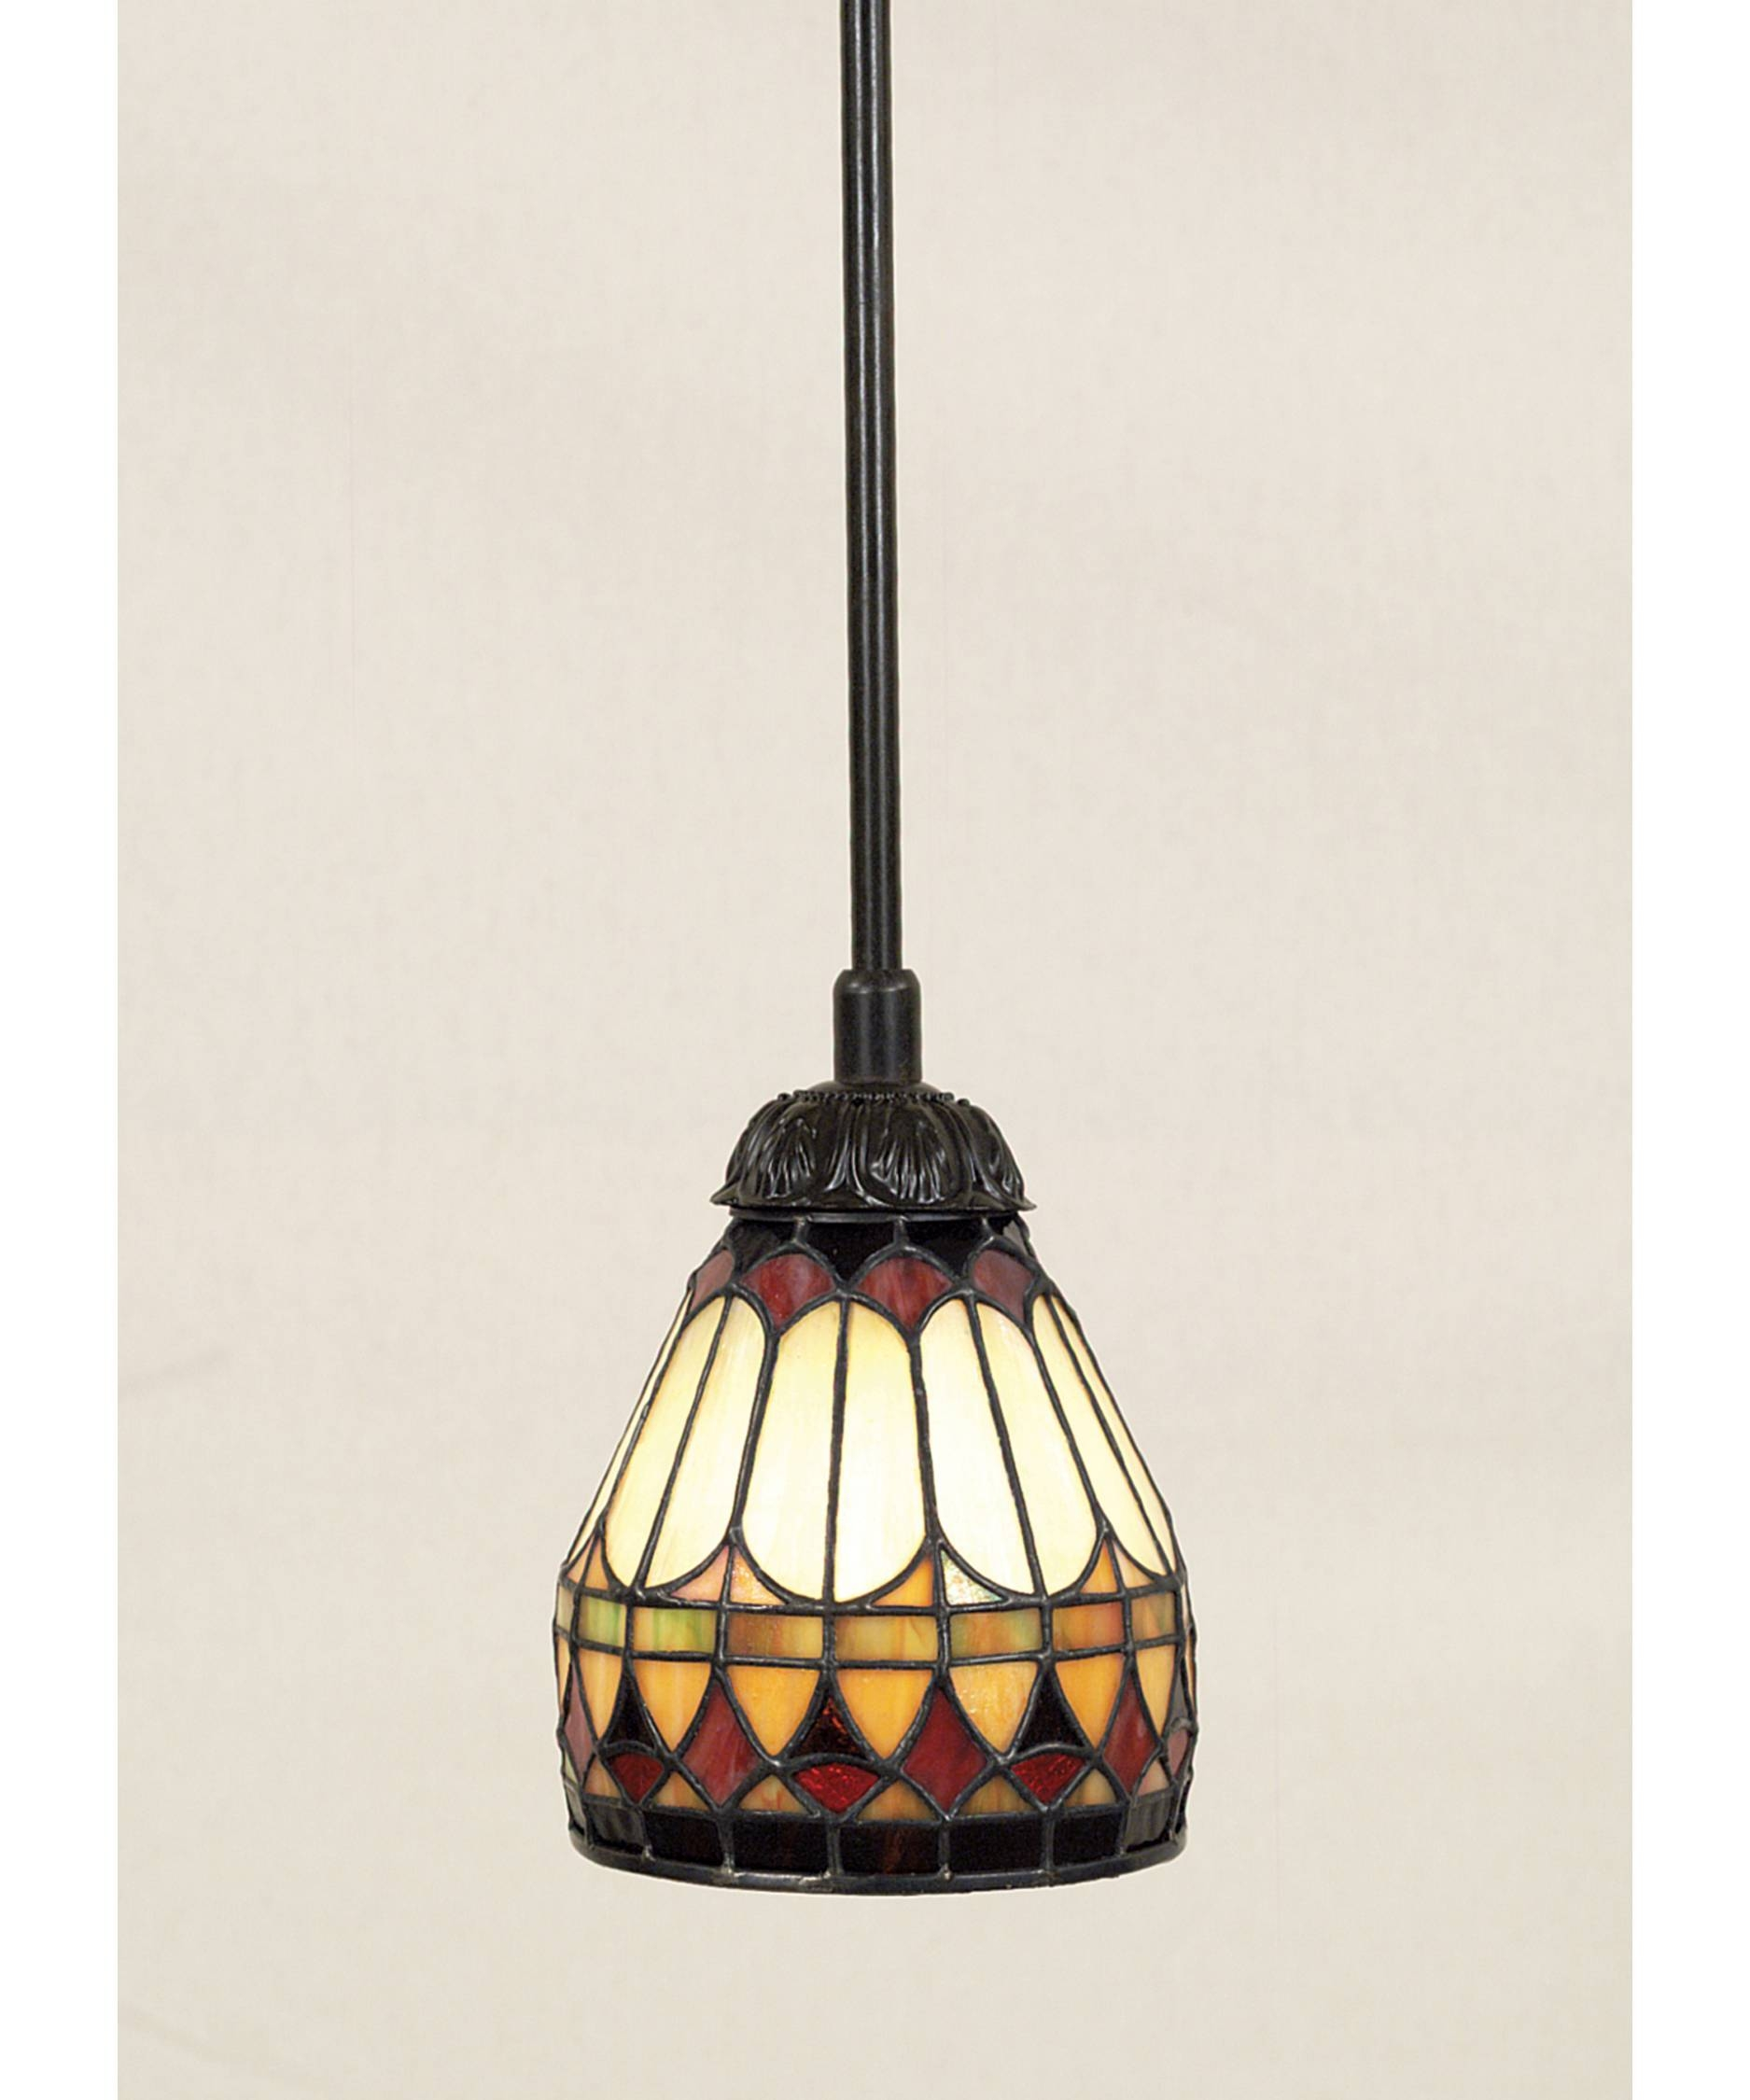 Stained Glass Pendant Light - Hbwonong in Stained Glass Lamps Pendant Lights (Image 8 of 15)